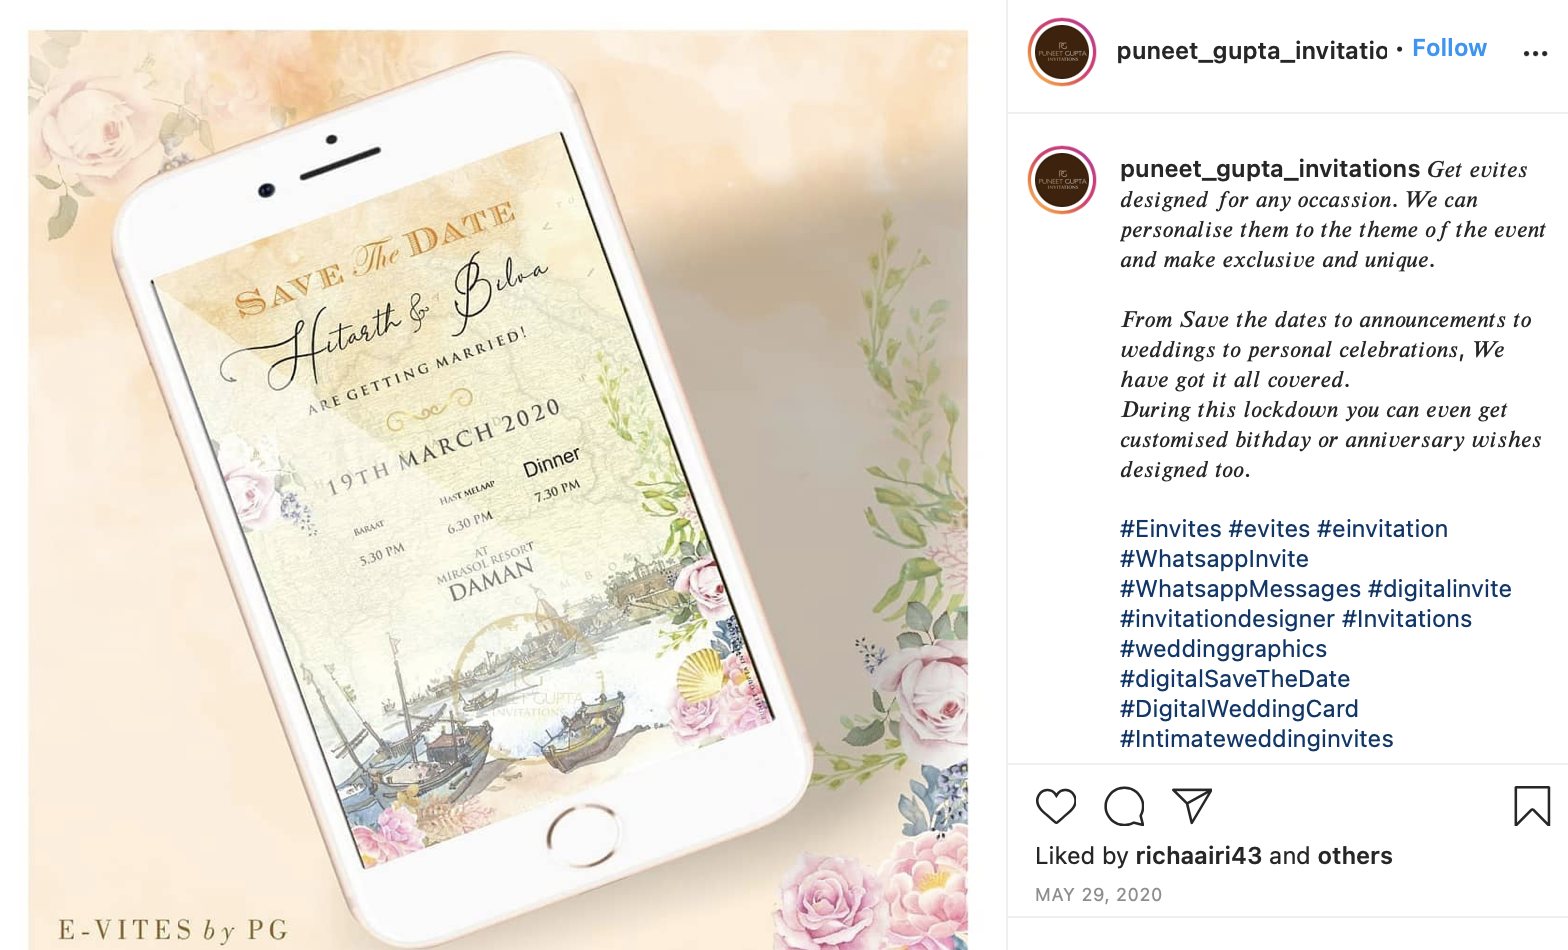 Photo of digital save-the-date card on Instagram post